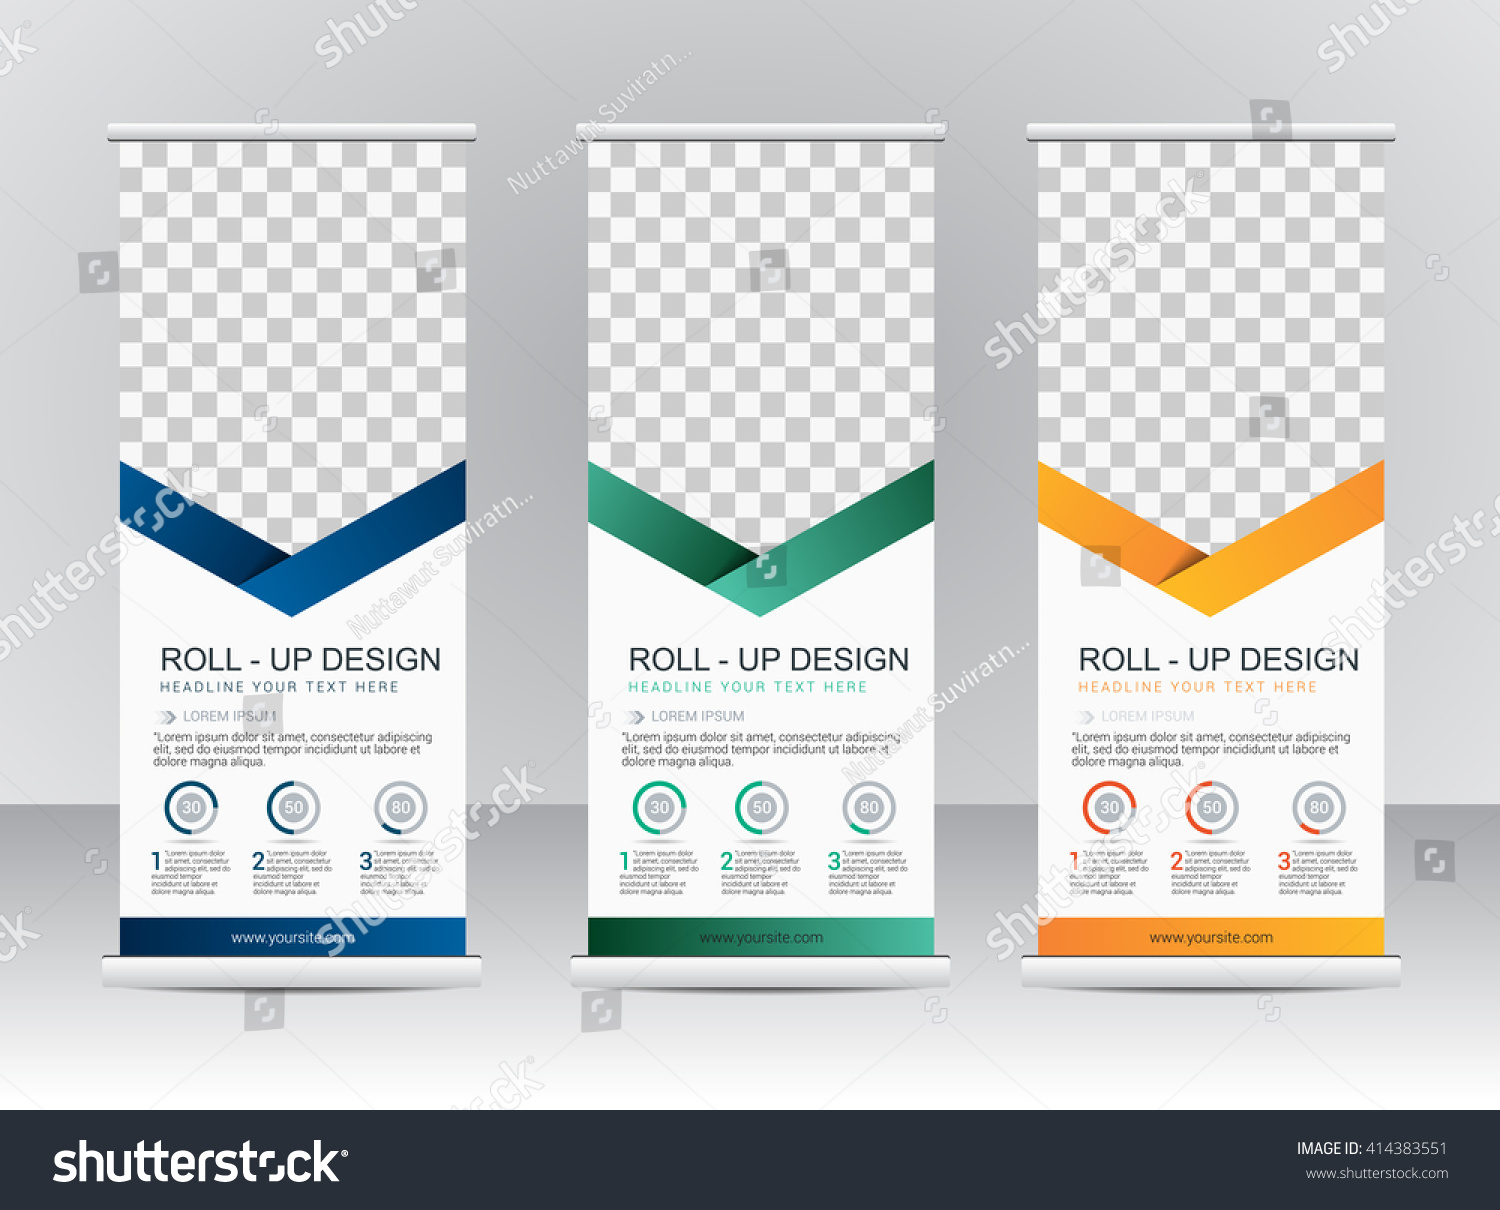 Roll up banner stand template design #414383551